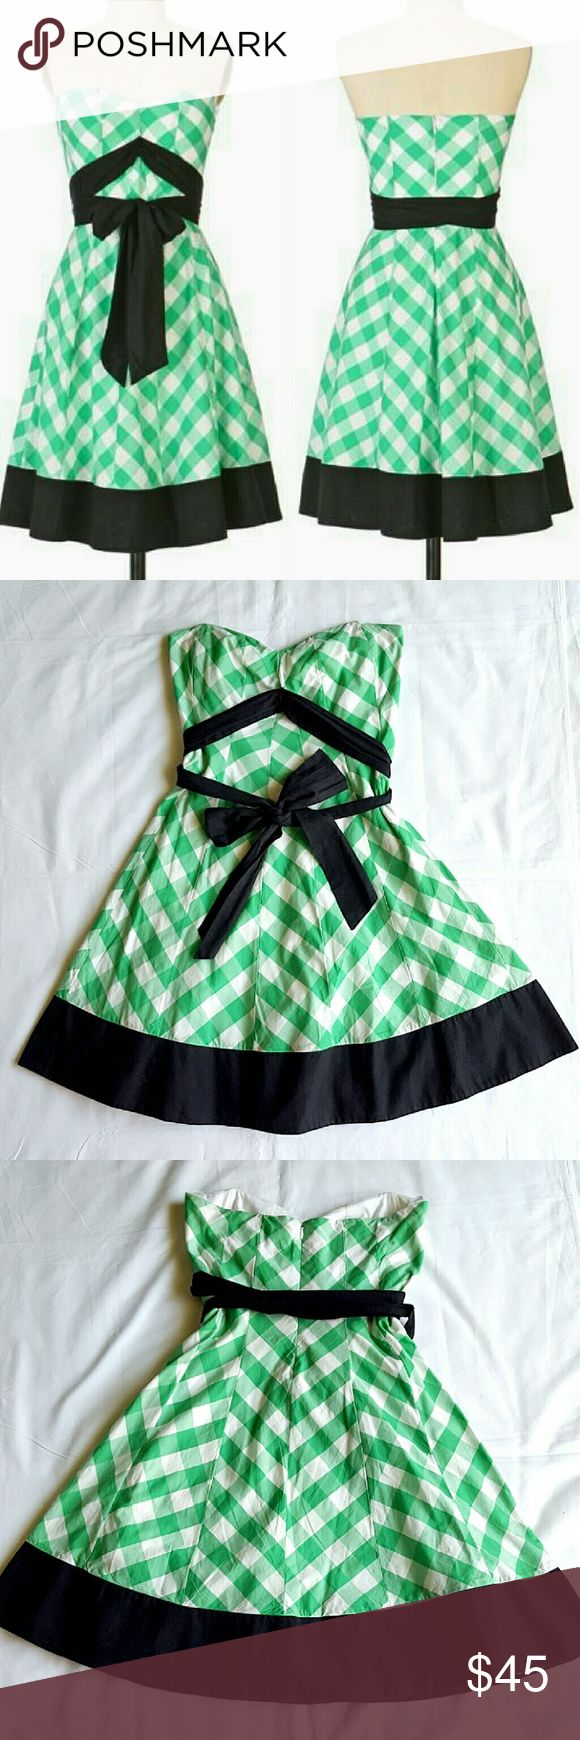 Anthro Orchard Dress By Odille. A lush canopy of green-and-white gingham. Light boning at the bust adds structure while a crinoline provides a full-skirted shape. DETAILS: Tacked-down sash Back zip Cotton; cotton lining Machine wash Worn very few times. Has one small tear at inside lining, the bottom of zipper (last pic) totally invisible as is inside). Other than that in excellent condition. Anthropologie Dresses Midi